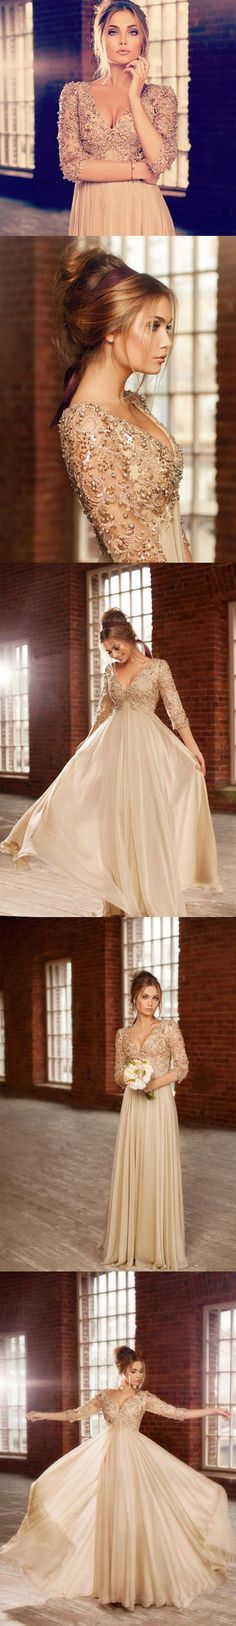 $144--Beautiful Long Prom Dresses 2014 New Arrival Deep V-neck 3/4 Sleeves…